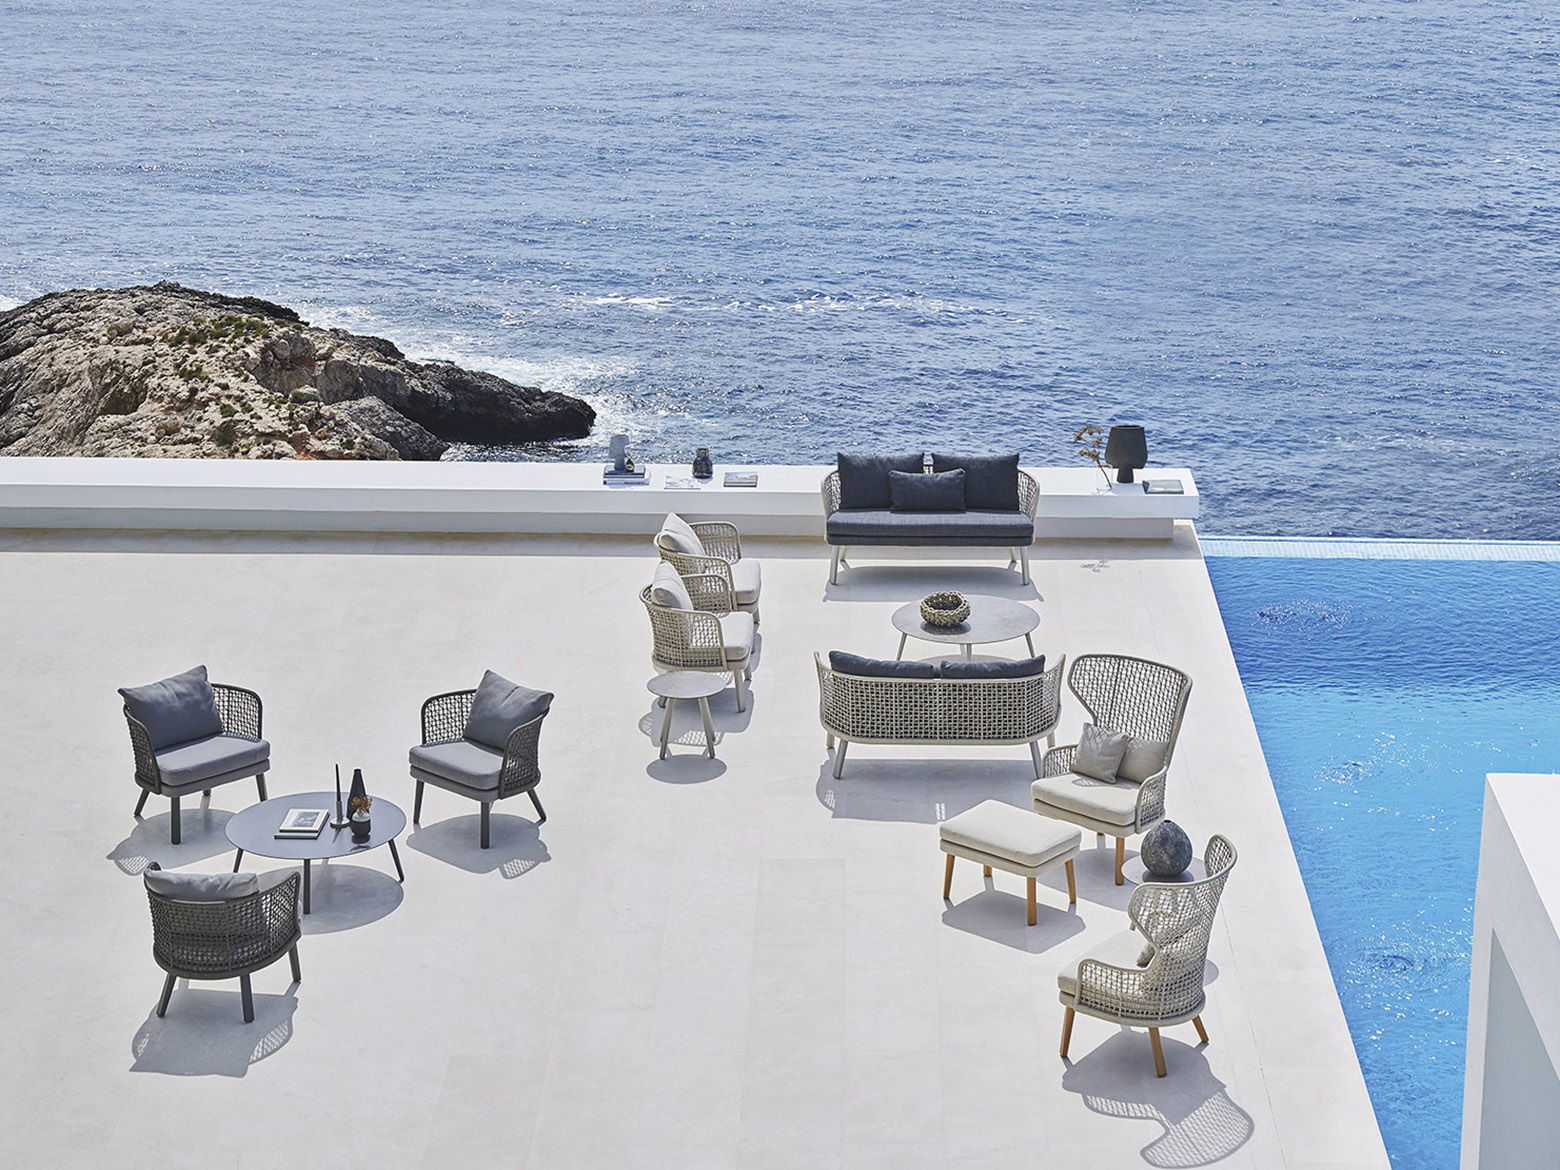 Outdoor design on a deck overlooking the sea.